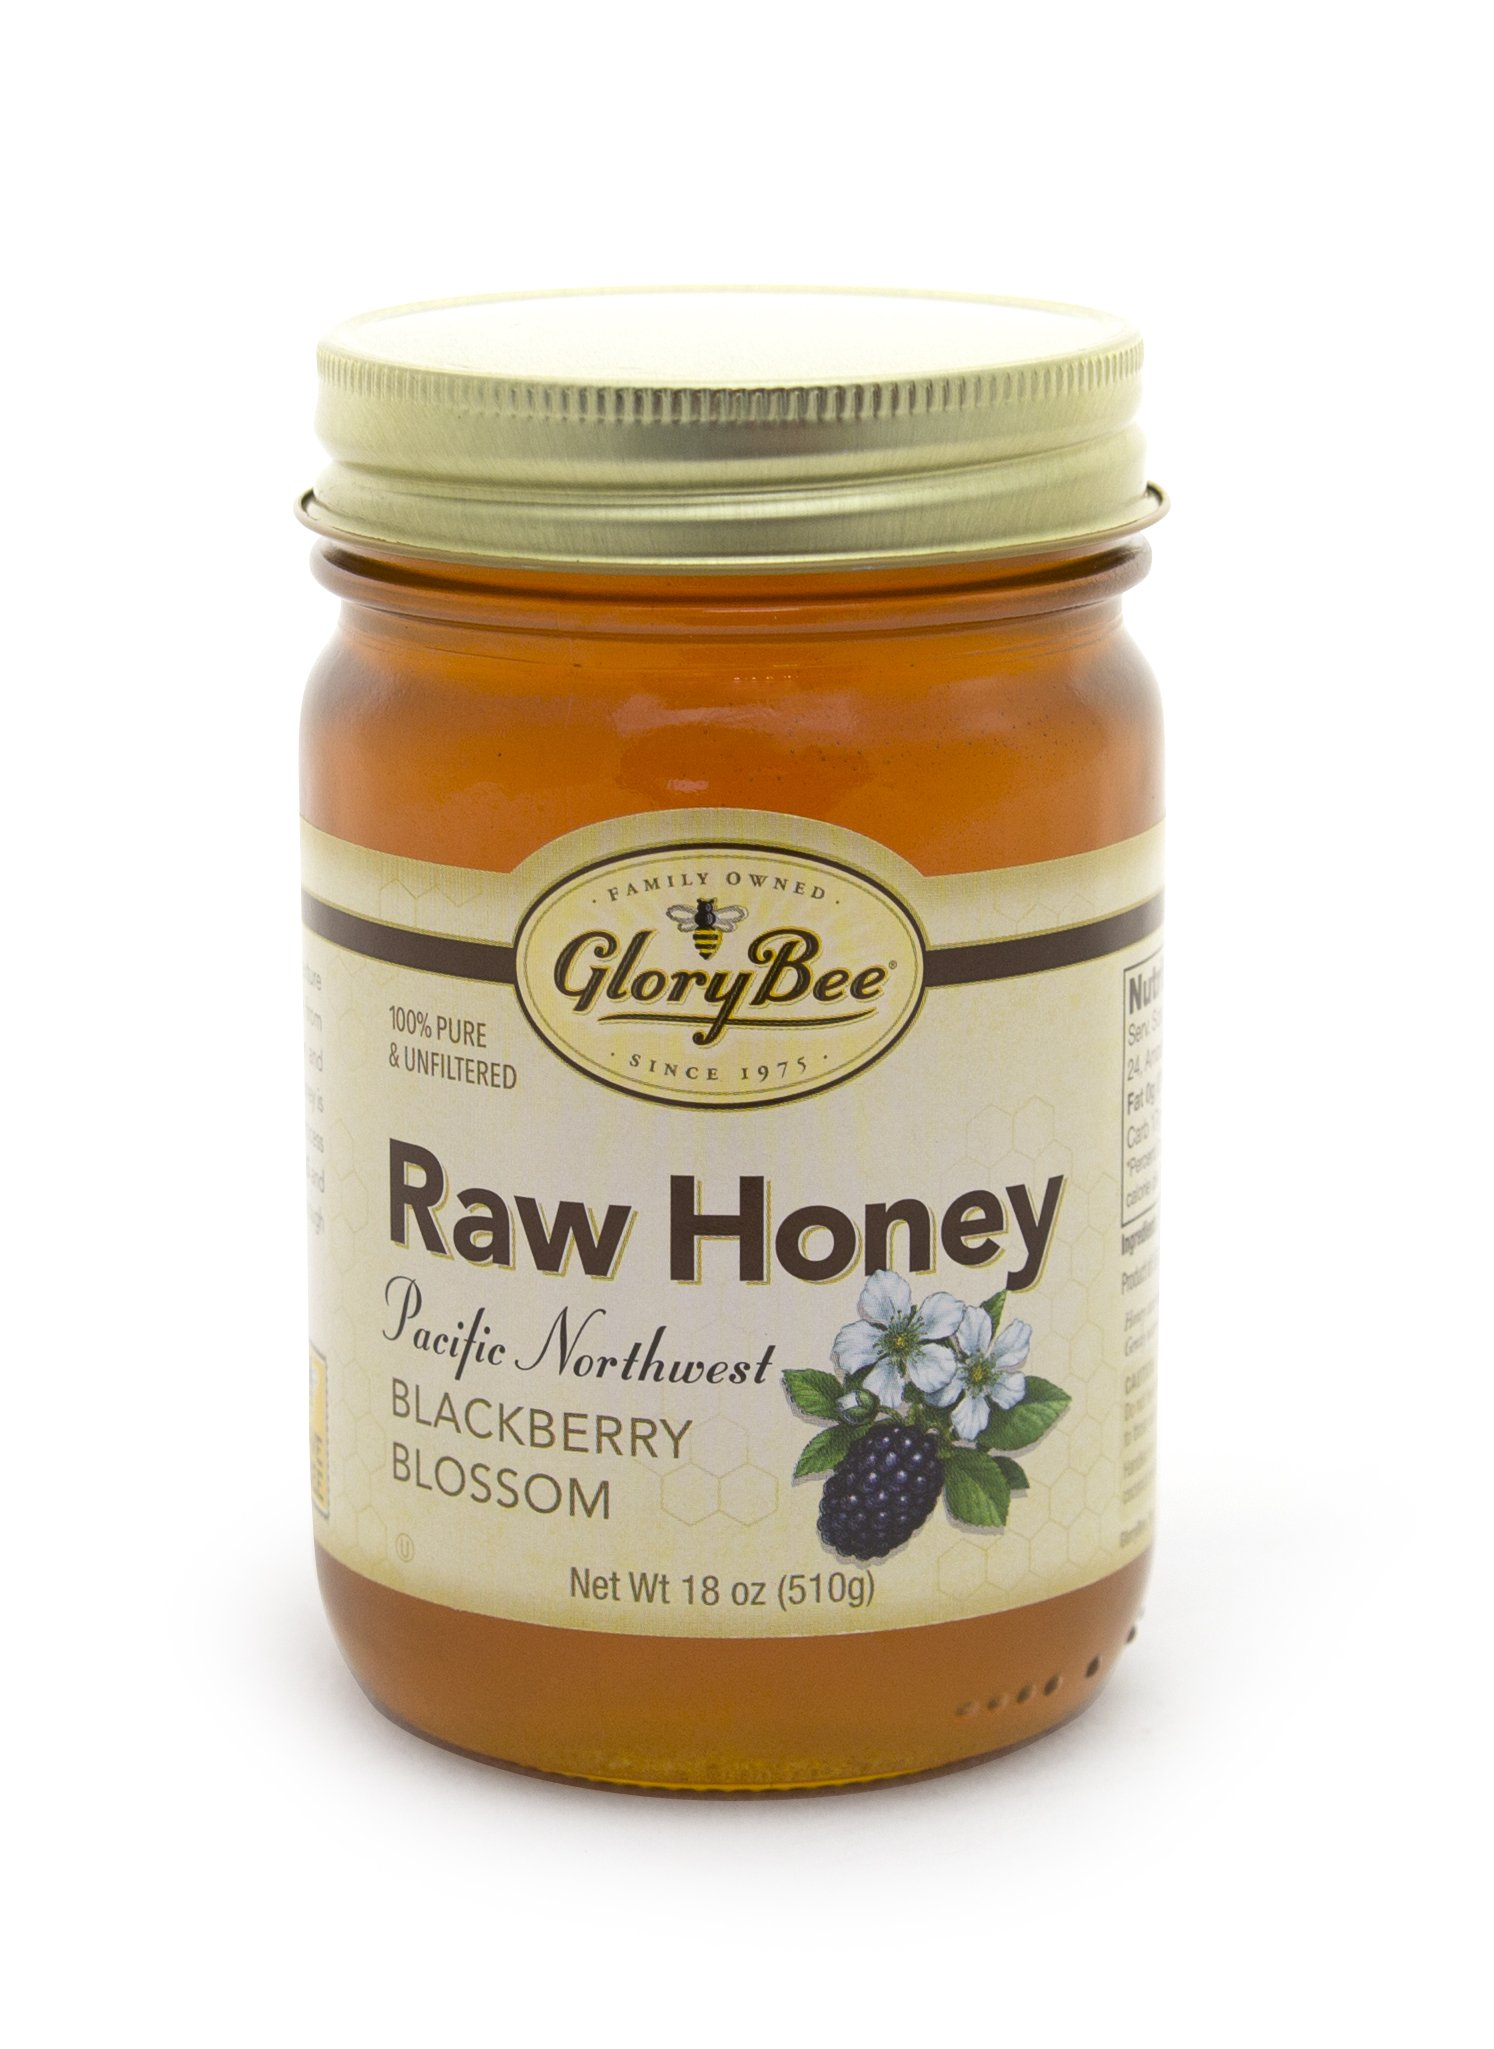 GloryBee Raw Pacific Northwest Blackberry Blossom Honey, 18 Ounce